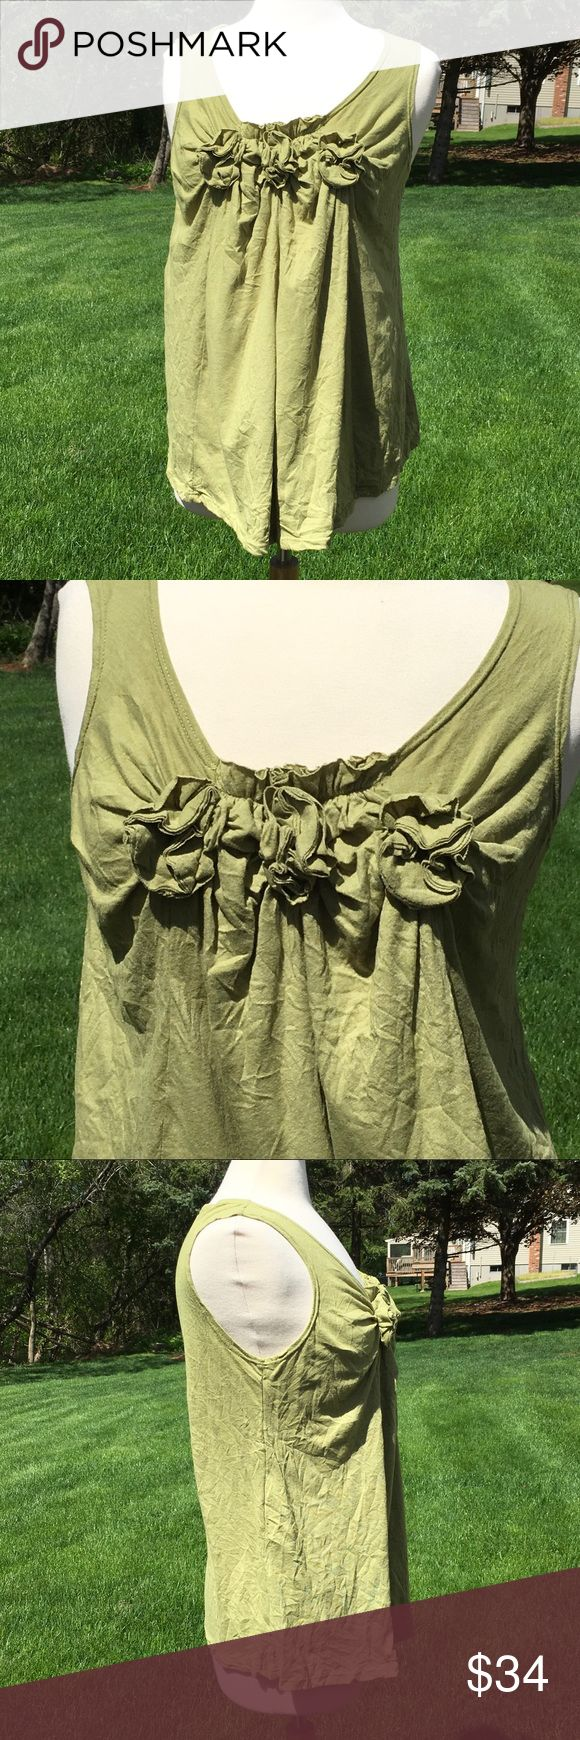 Chalet Crinkled Tank Top Soft, lightweight, crinkled design with 3 rosette details along front neckline. Loose fitting, flowy at the bottom. Care tag has been removed. Excellent condition, worn once. Chalet (Boutique Brand) Tops Tank Tops